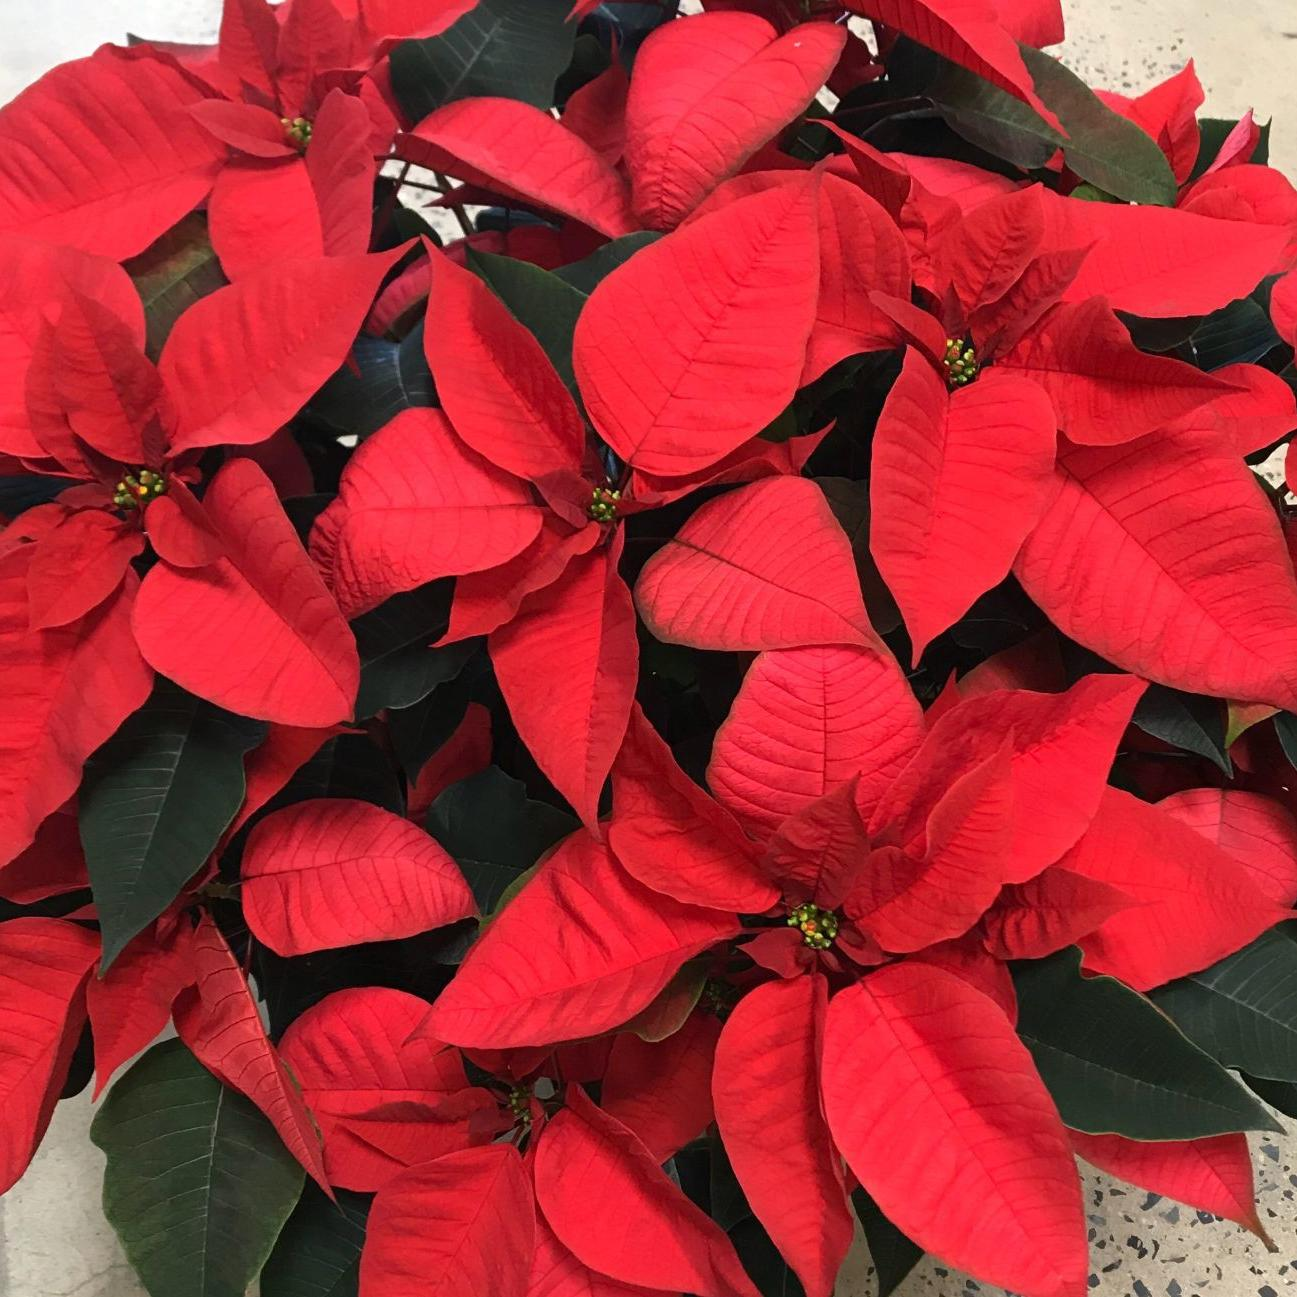 Getting Poinsettia To Bloom Again Requires Year Round Care